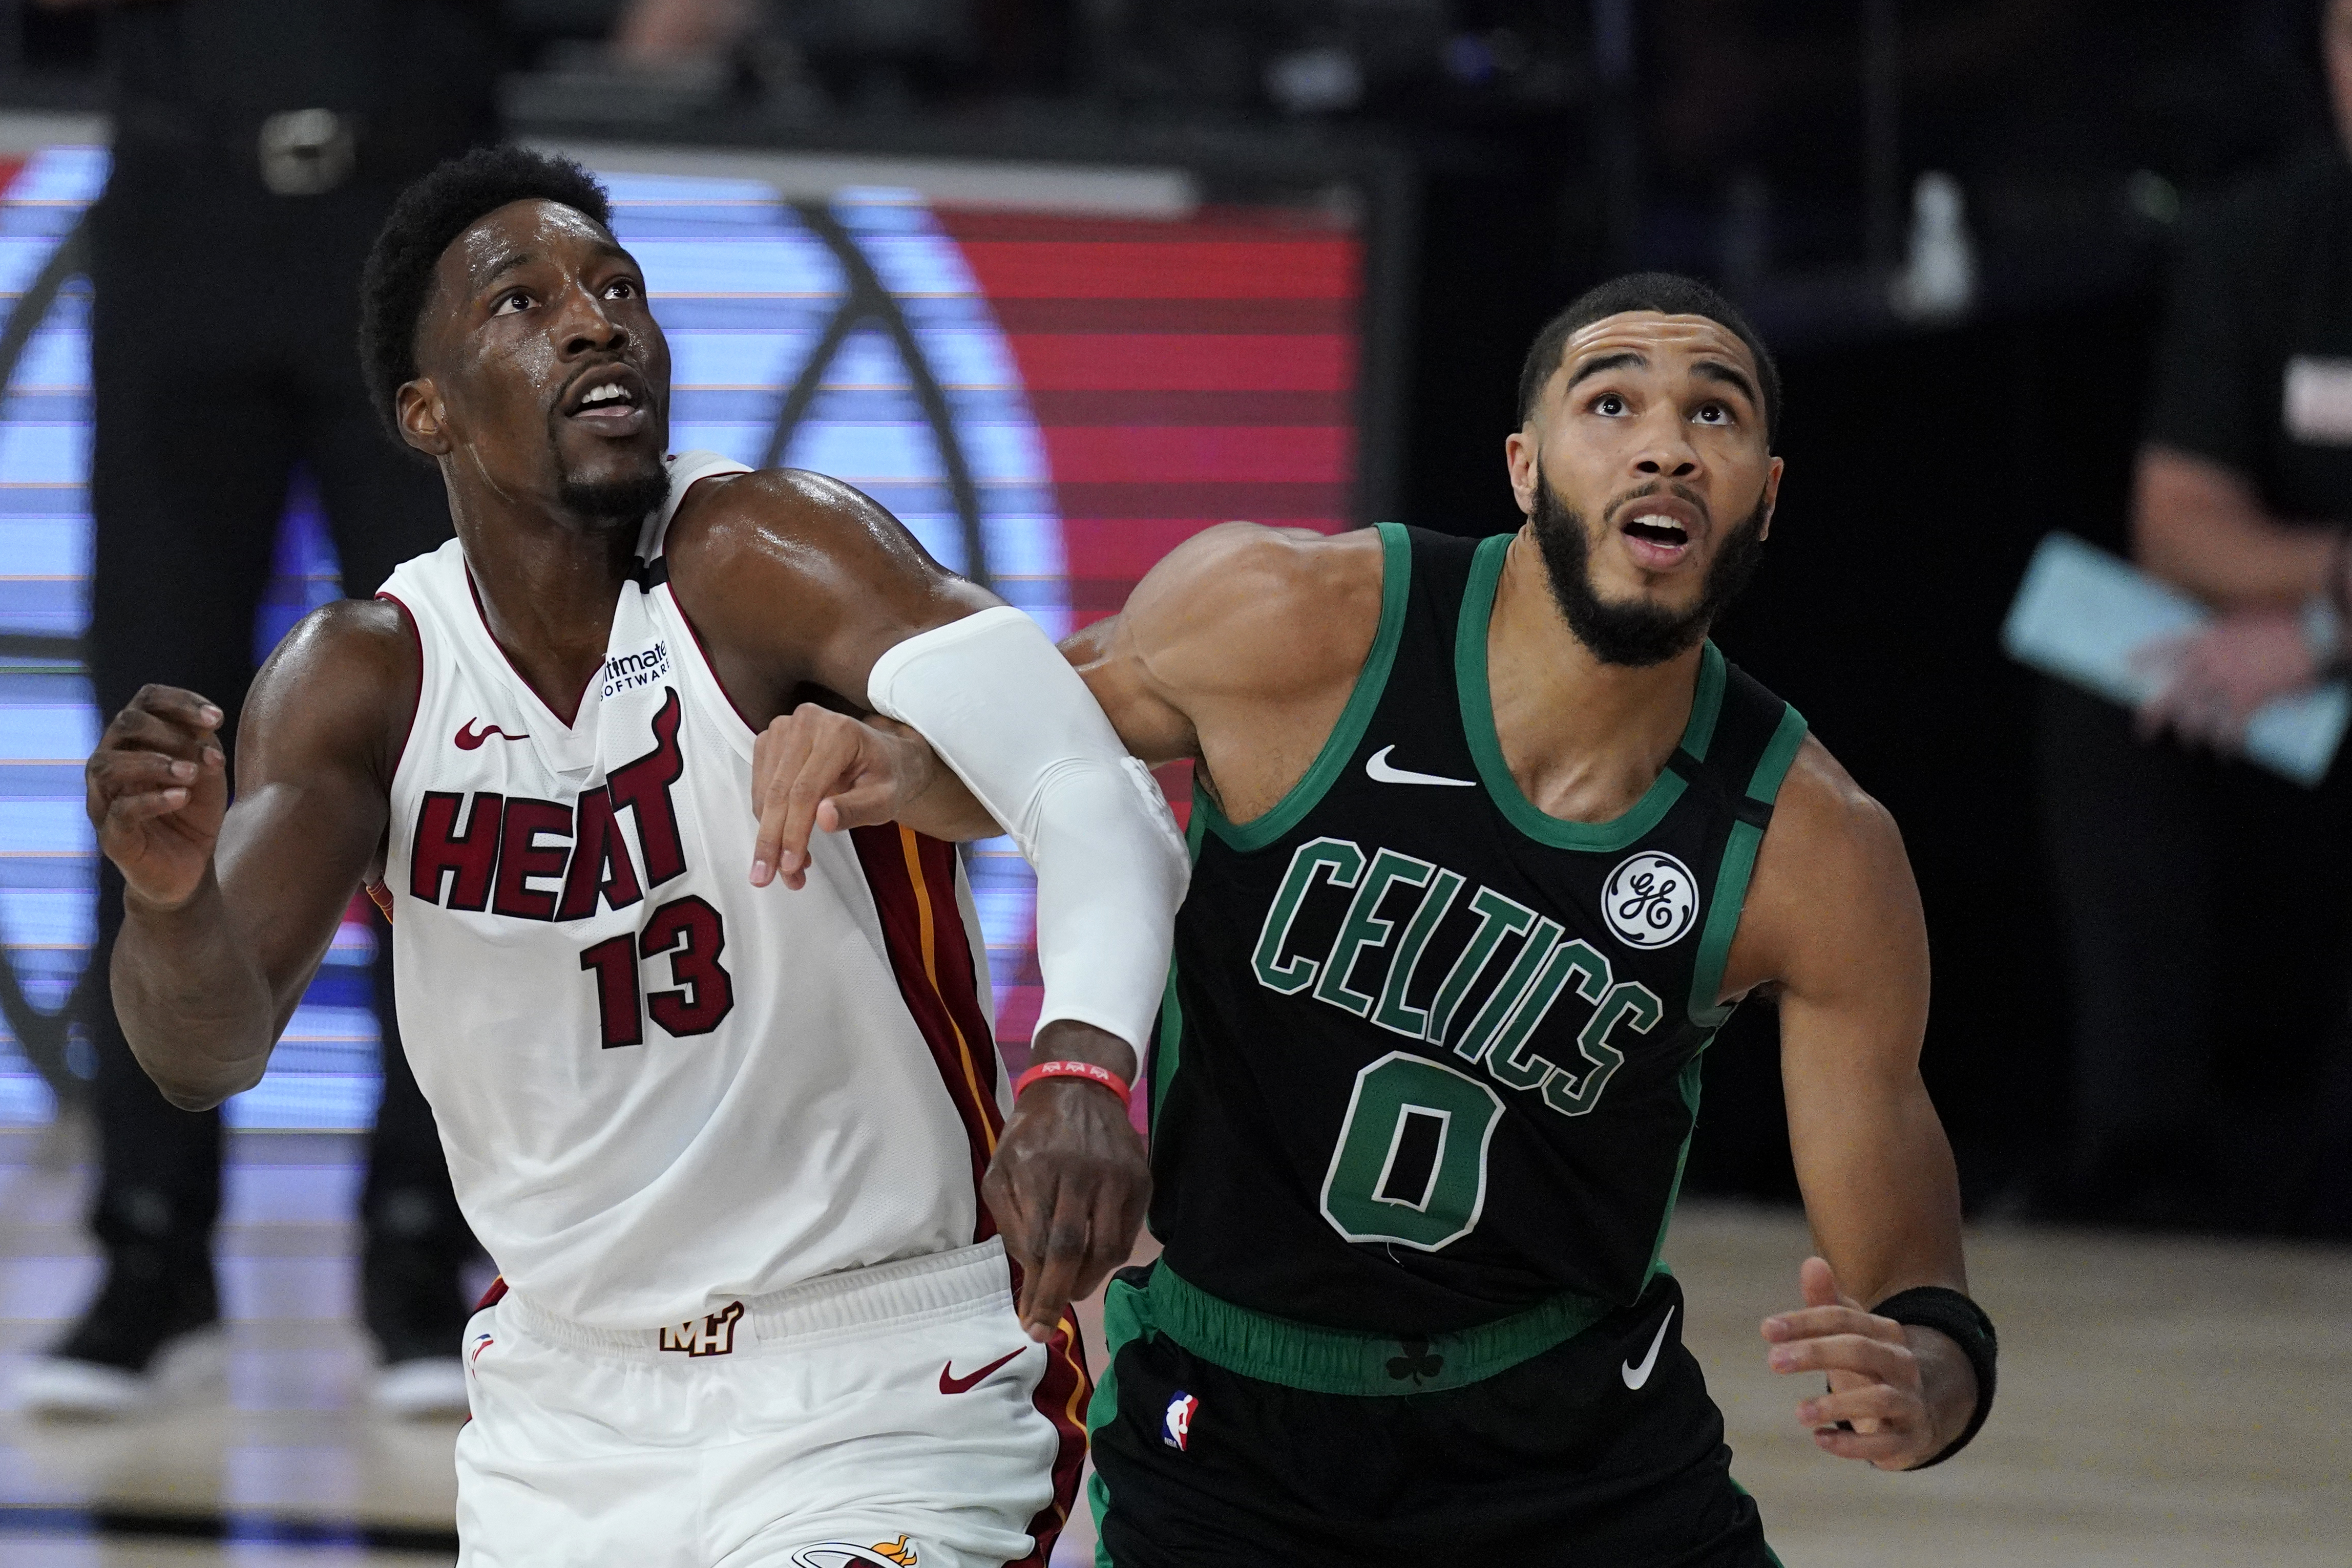 Miami Heat Vs Boston Celtics Game 2 Free Live Stream 9 17 20 Watch Eastern Conference Finals Nba Playoffs Online Time Tv Channel Nj Com